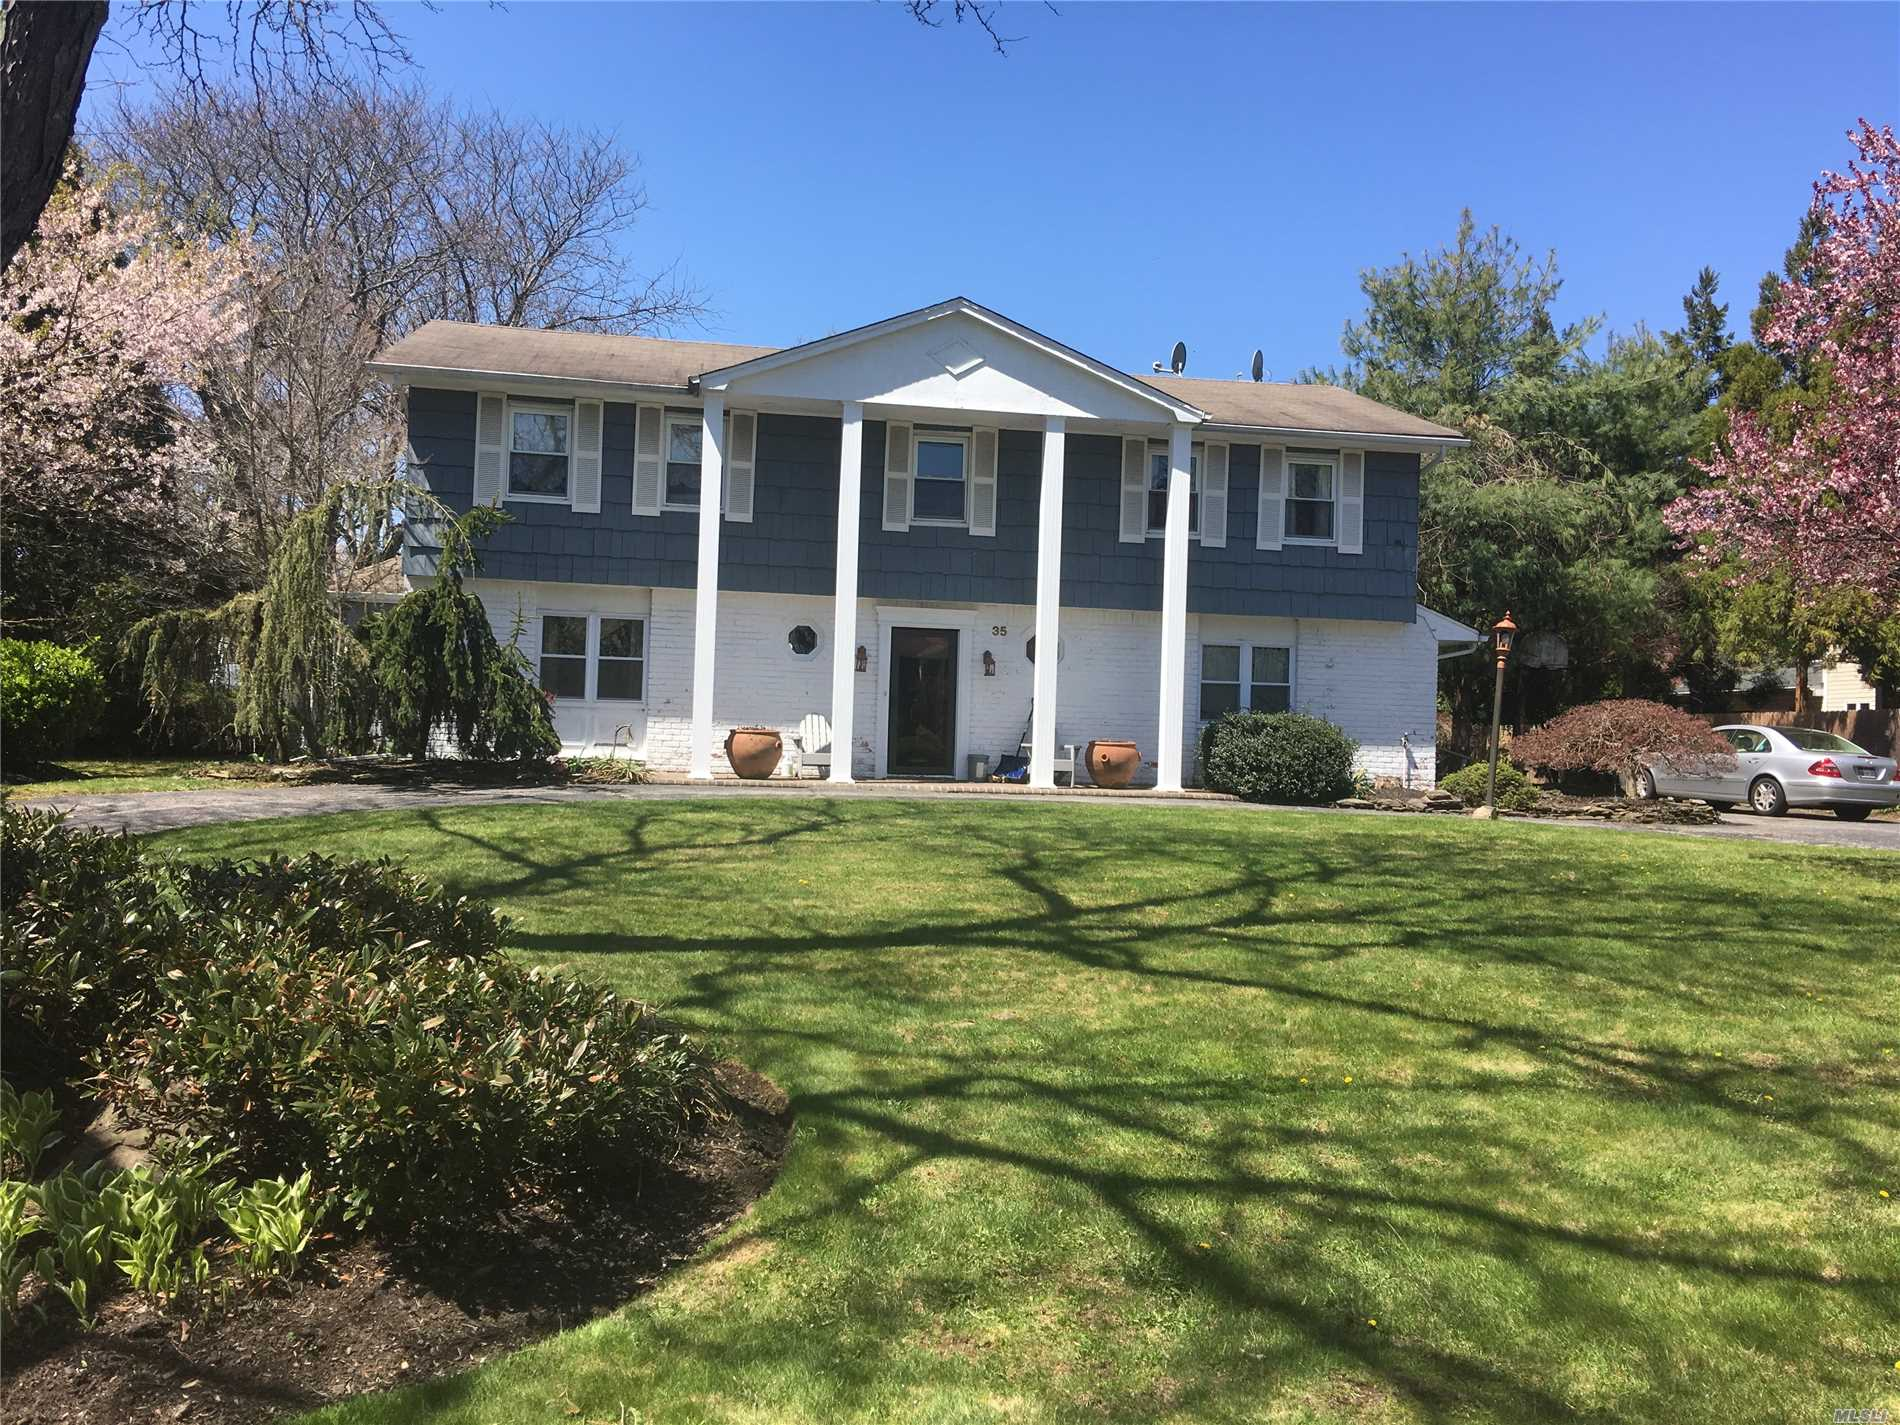 east northport singles & personals View all east northport, ny hud listings in your area all hud homes that are currently on the market can be found here on hudcom find hud properties below market value.